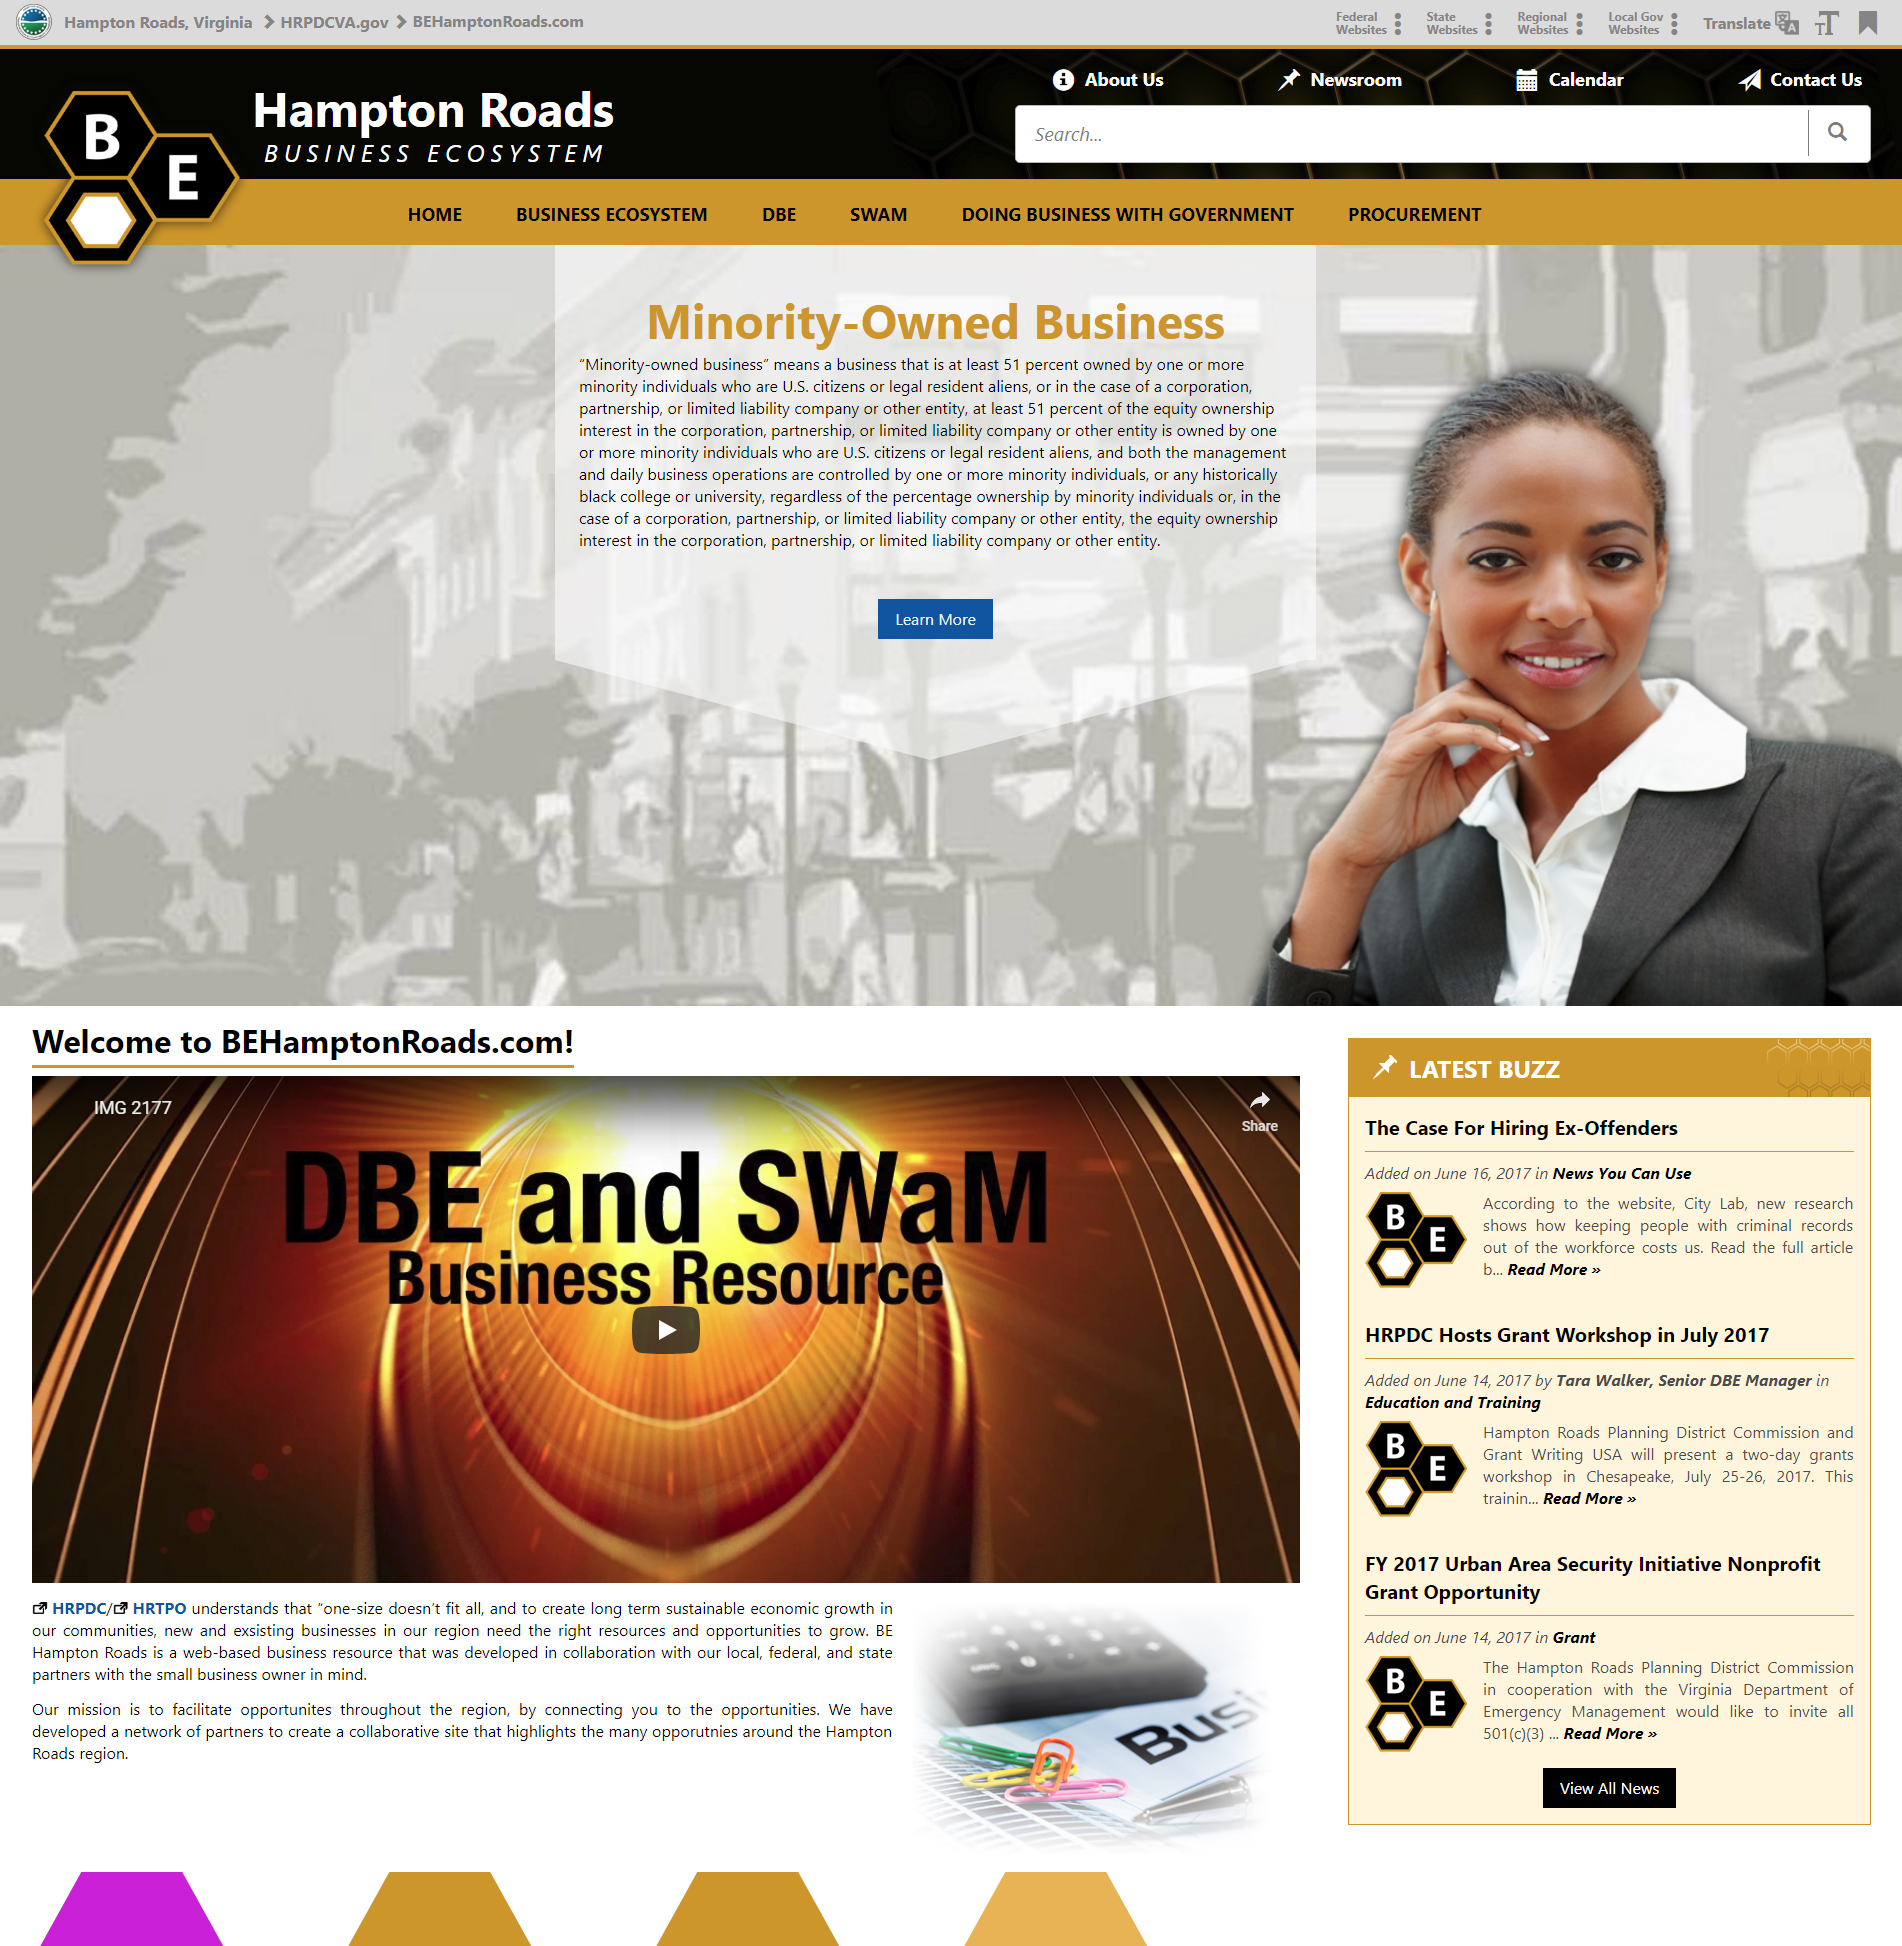 BEHamptonRoads.com